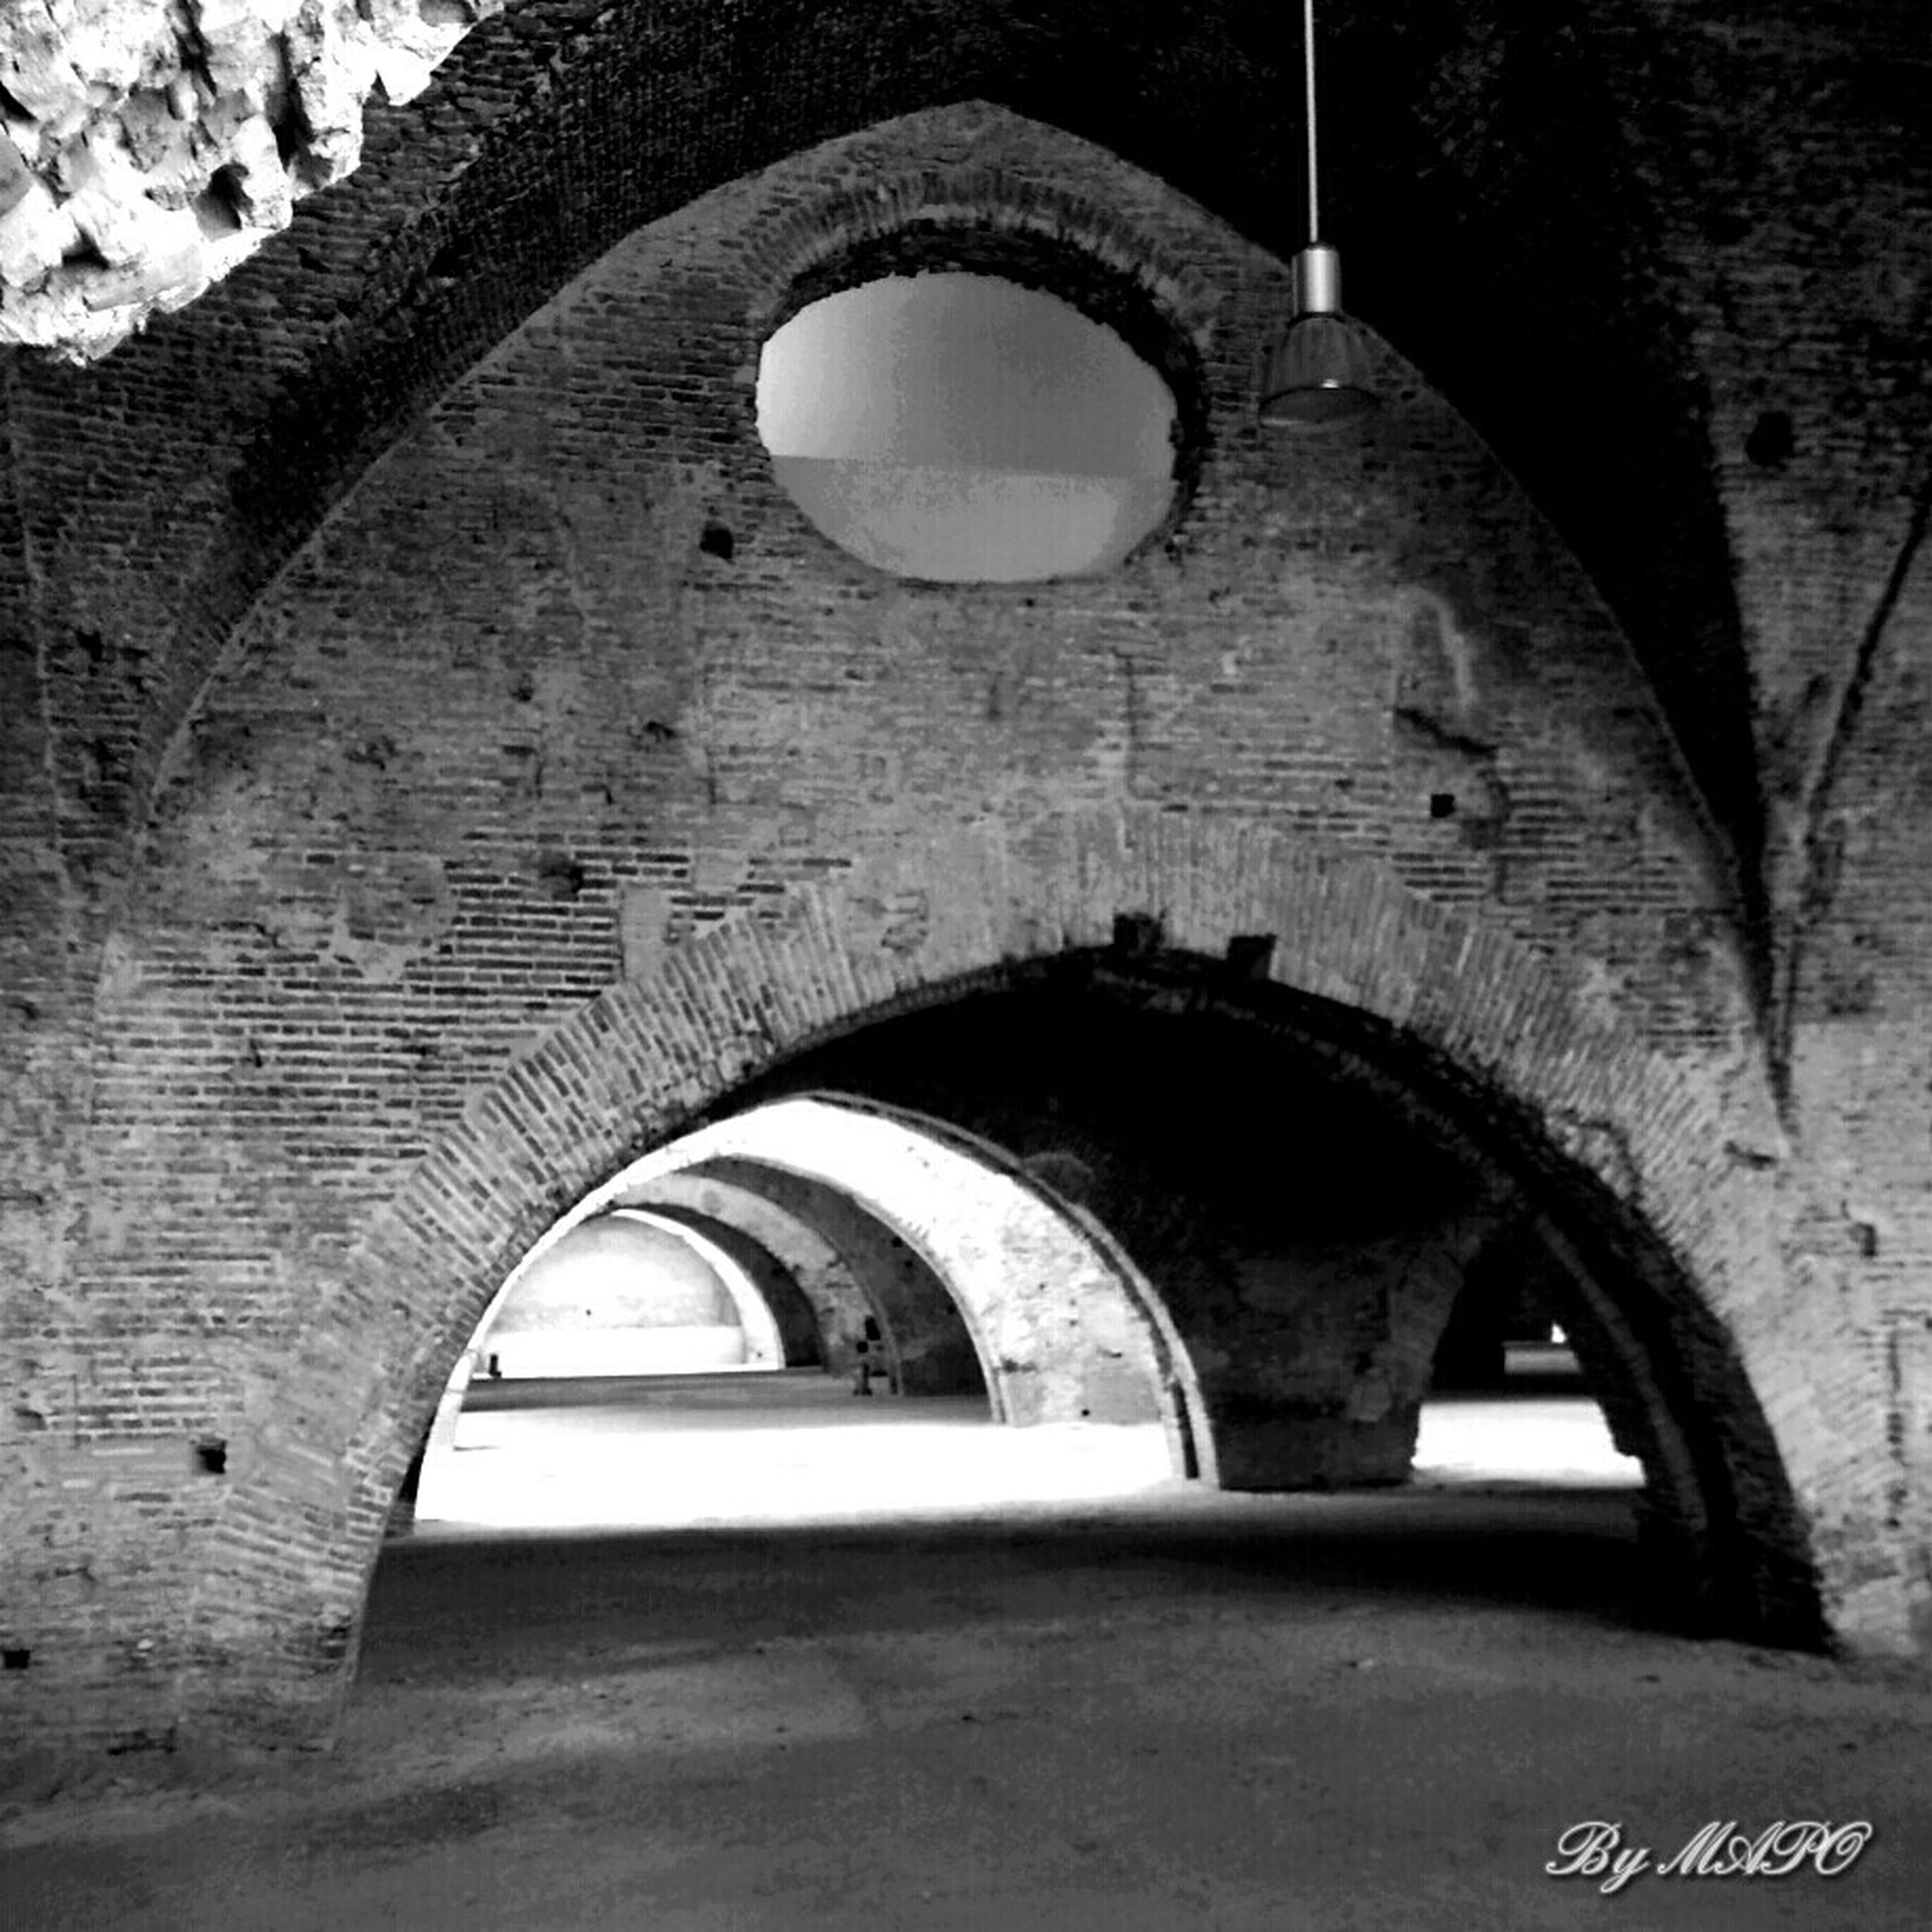 arch, architecture, built structure, building exterior, brick wall, circle, wall - building feature, wall, no people, stone wall, arched, old, day, archway, window, building, outdoors, low angle view, hole